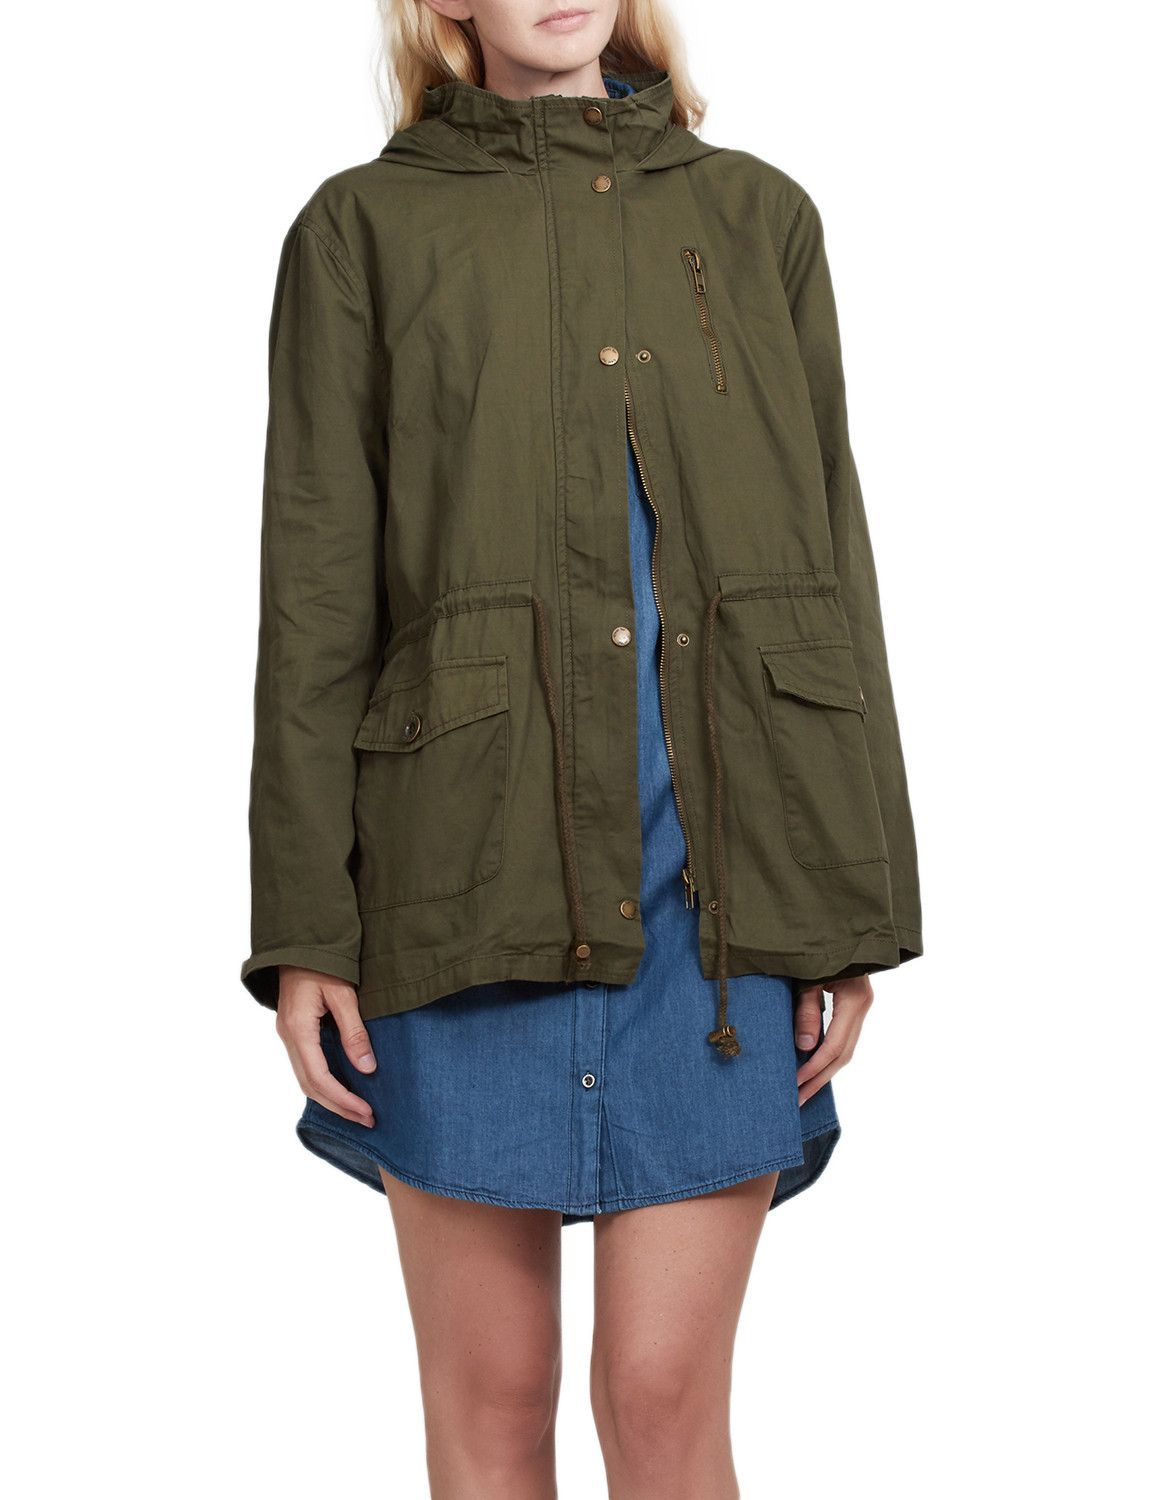 83f3a185de6b9 LE3NO Womens Military Anorak Safari Jacket with Hoodie